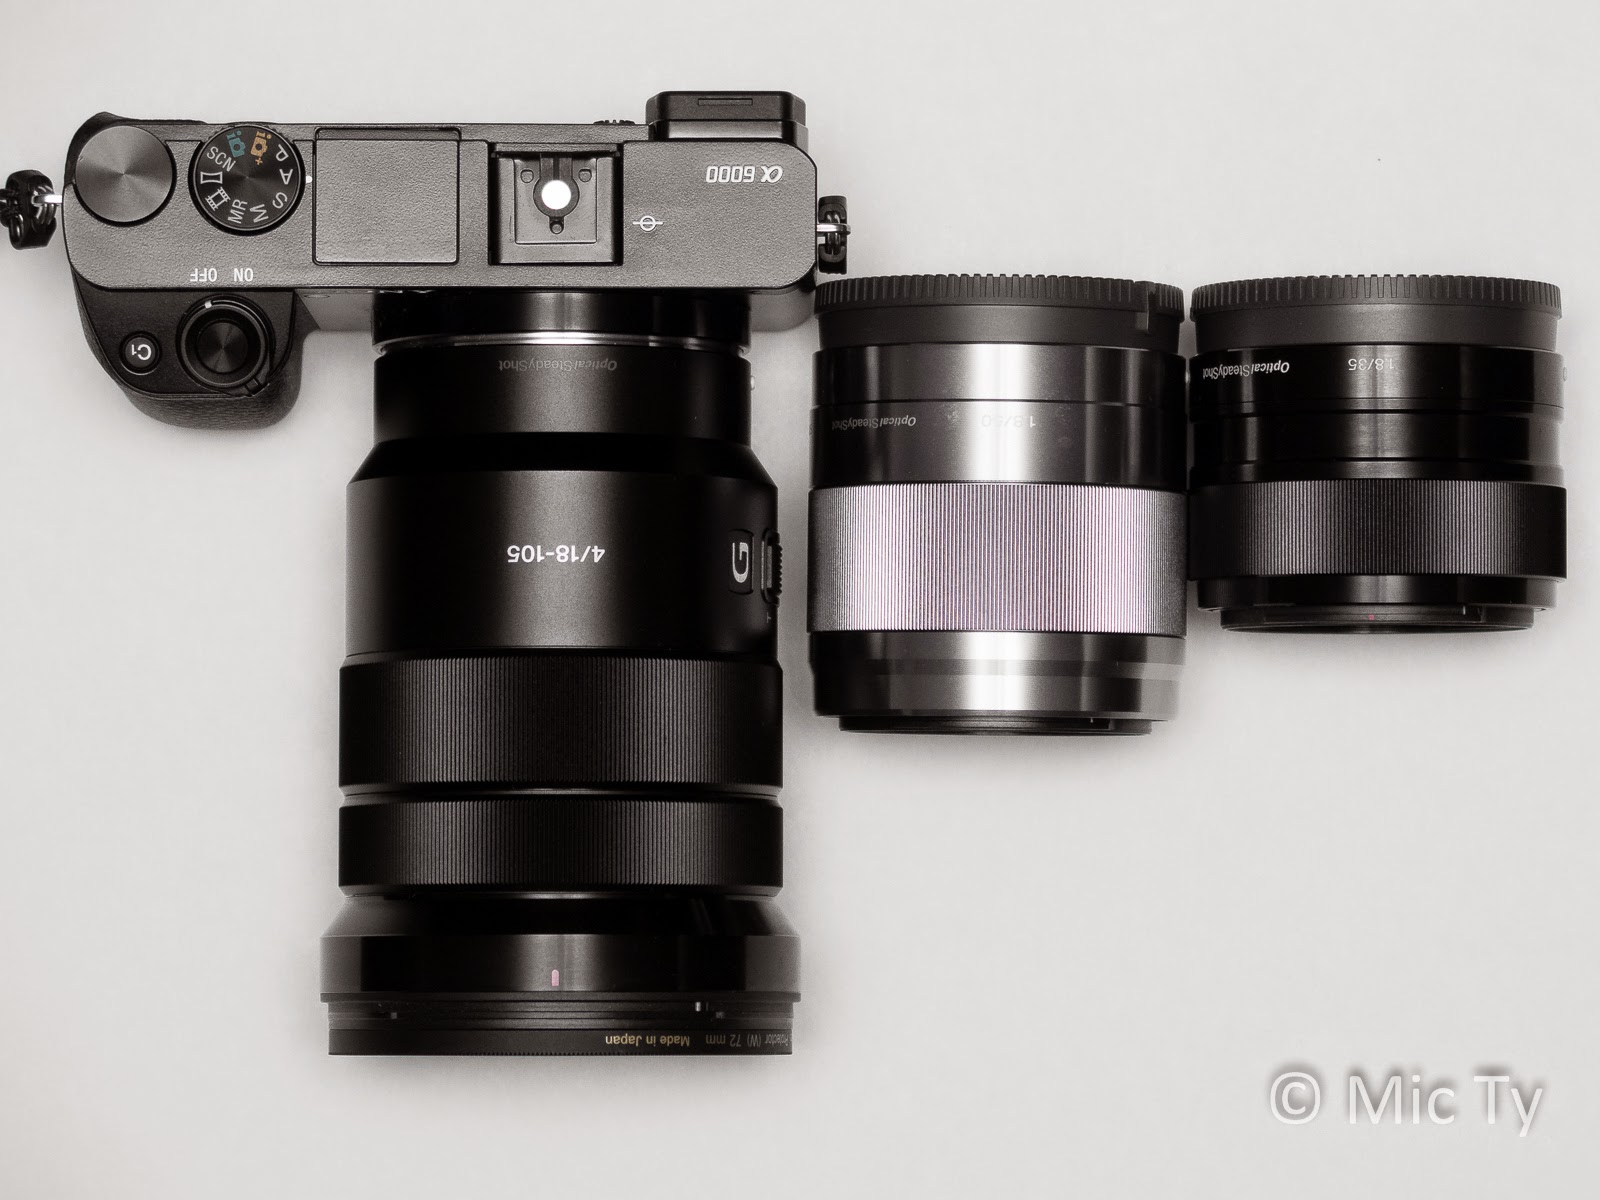 Better Family Photos Sony 18 105 F4 G Oss Review Fe 24 105mm F 4 Lensa Kamera Black The Next To 50 And 35